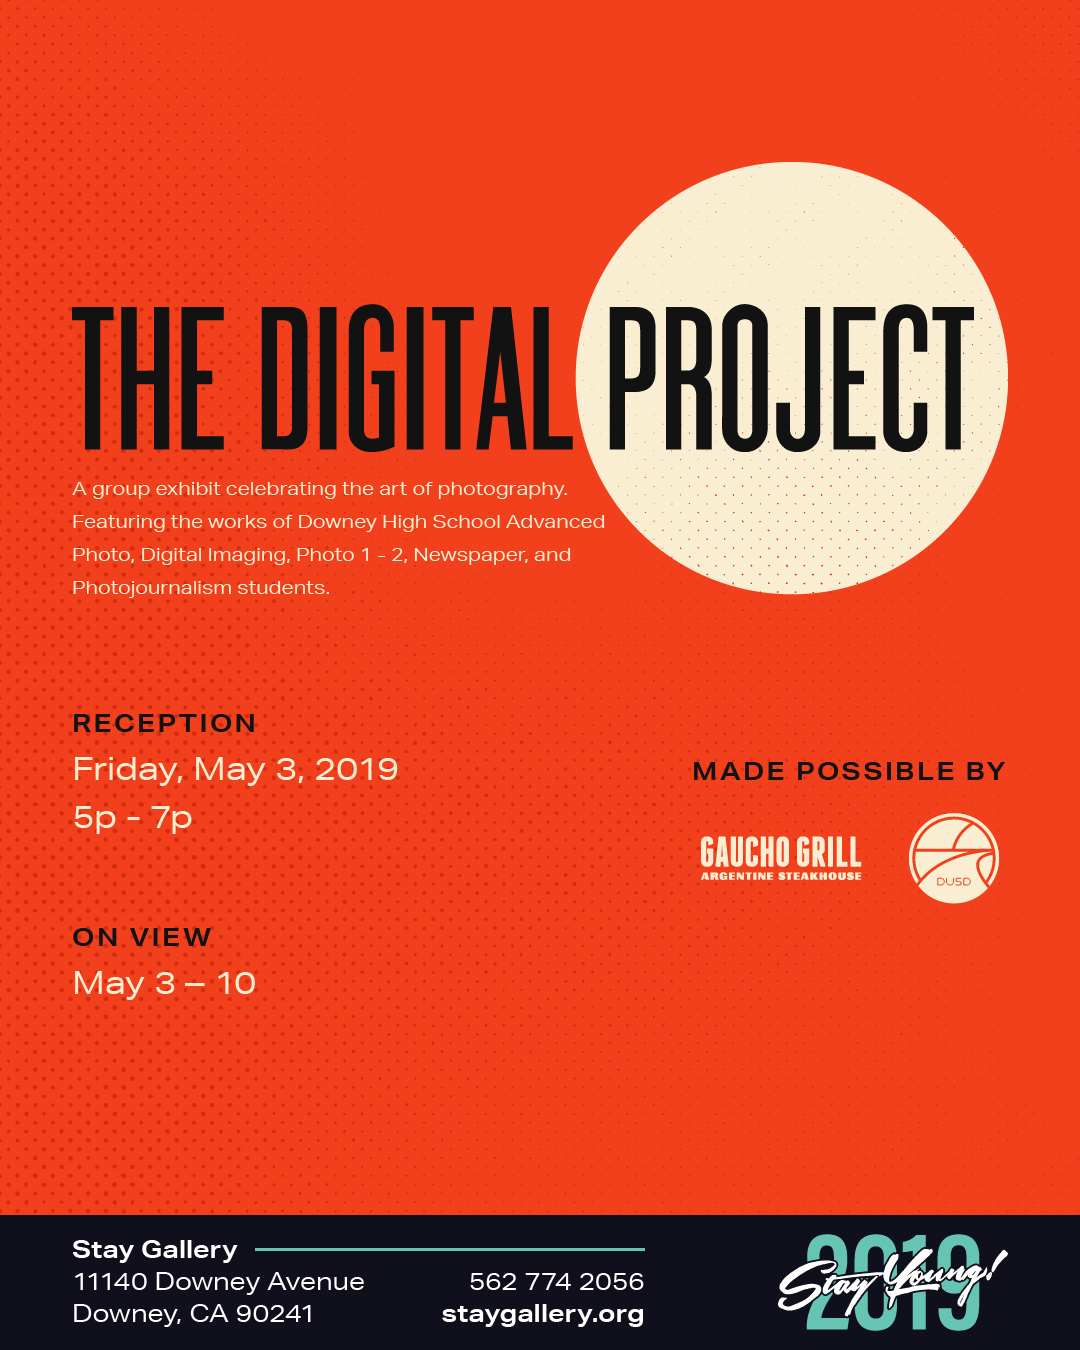 stay-gallery-the-digital-project-flyer.png